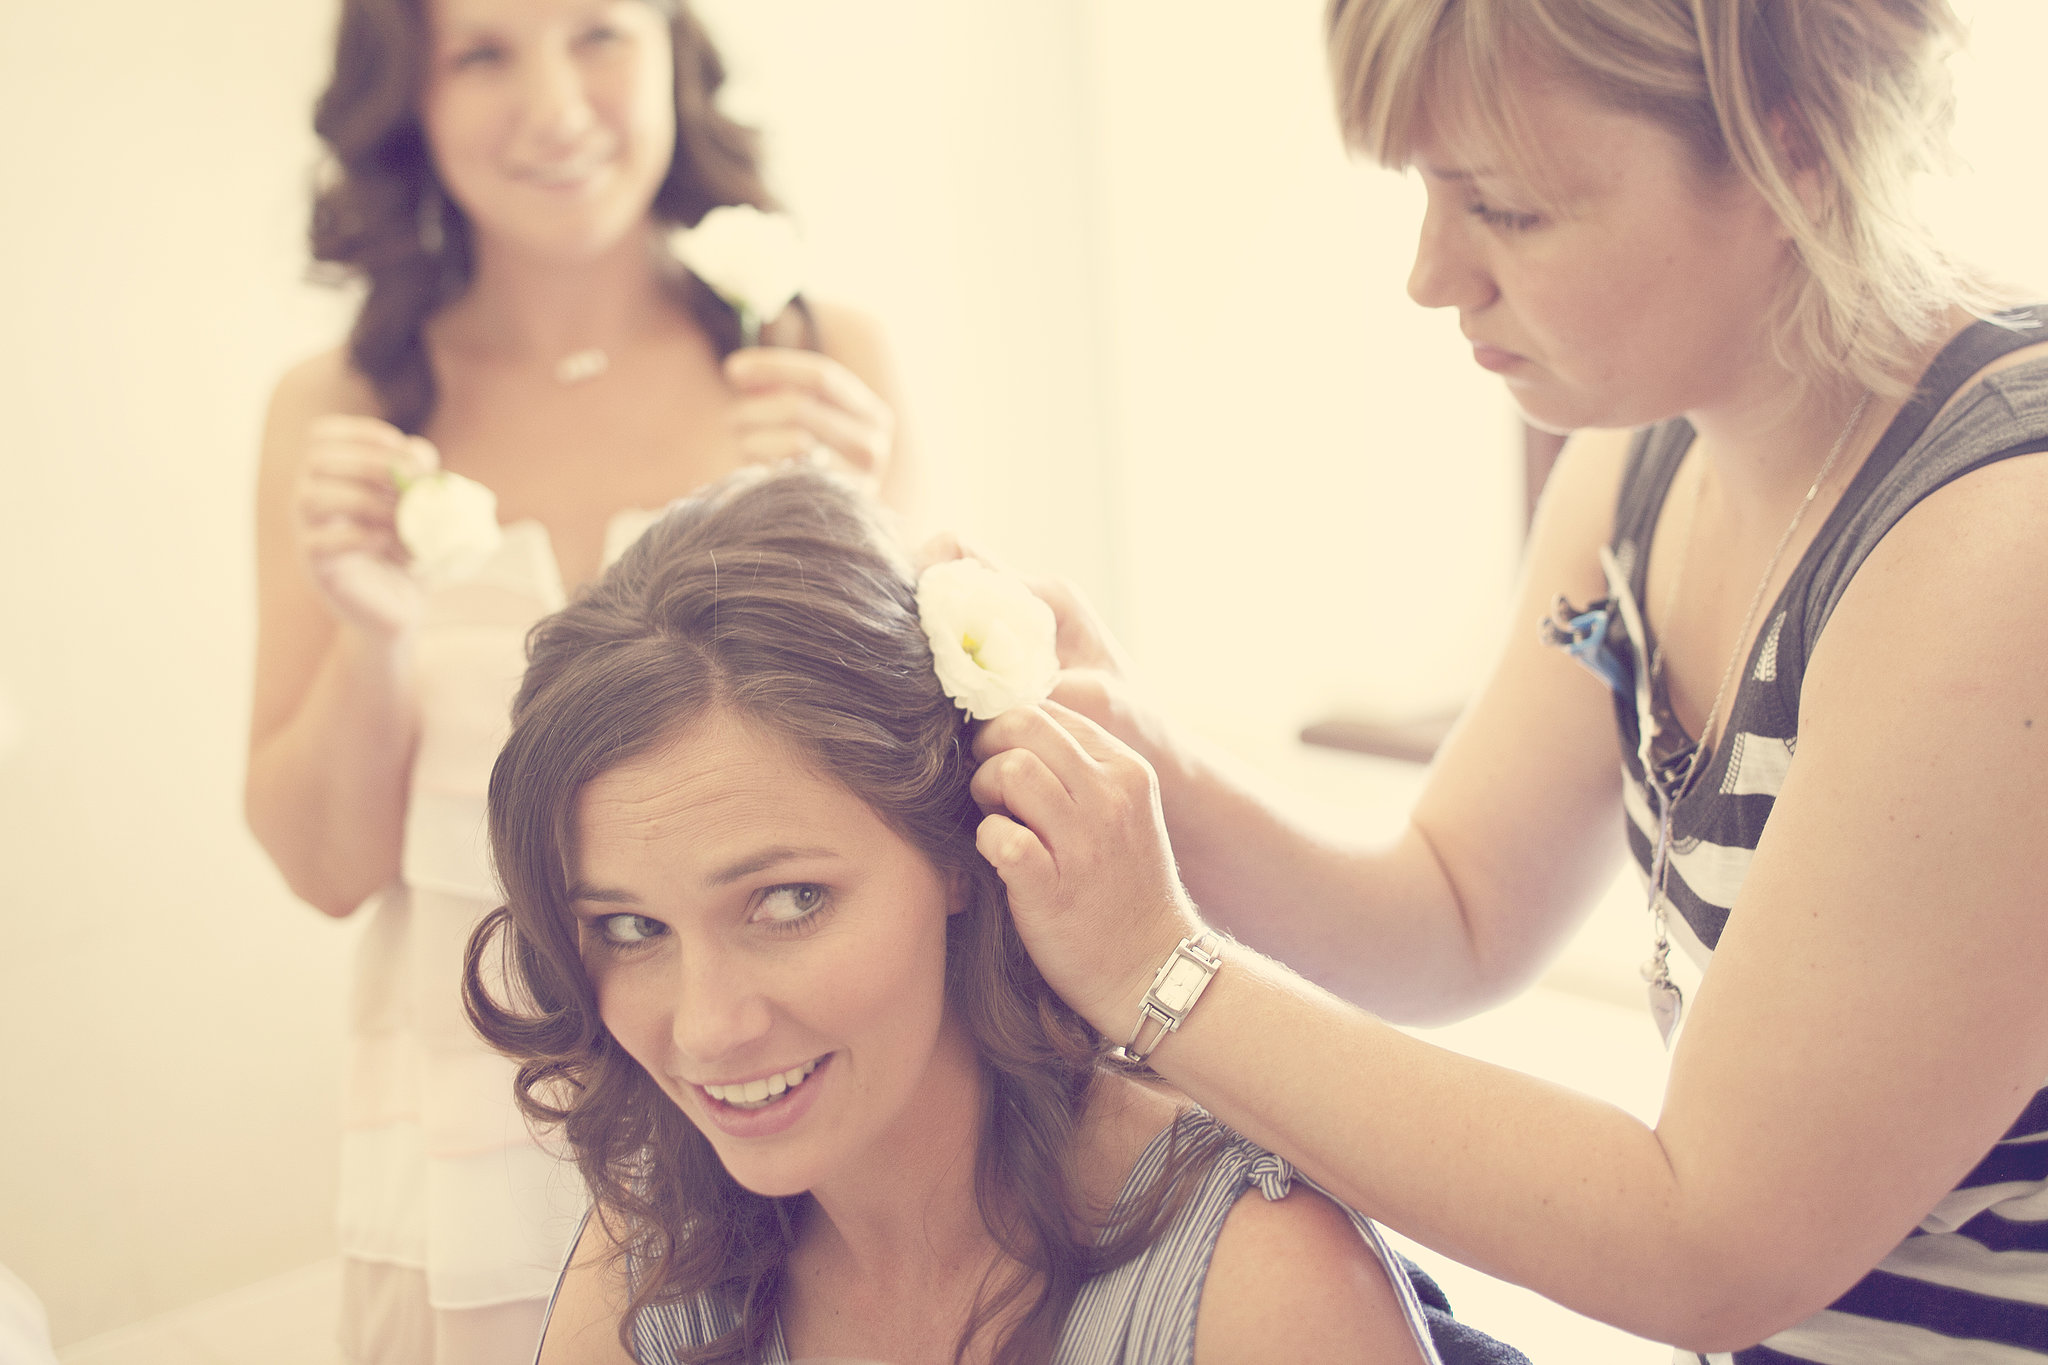 behind--scenes-peek-bride-dressing-room-depicted-just